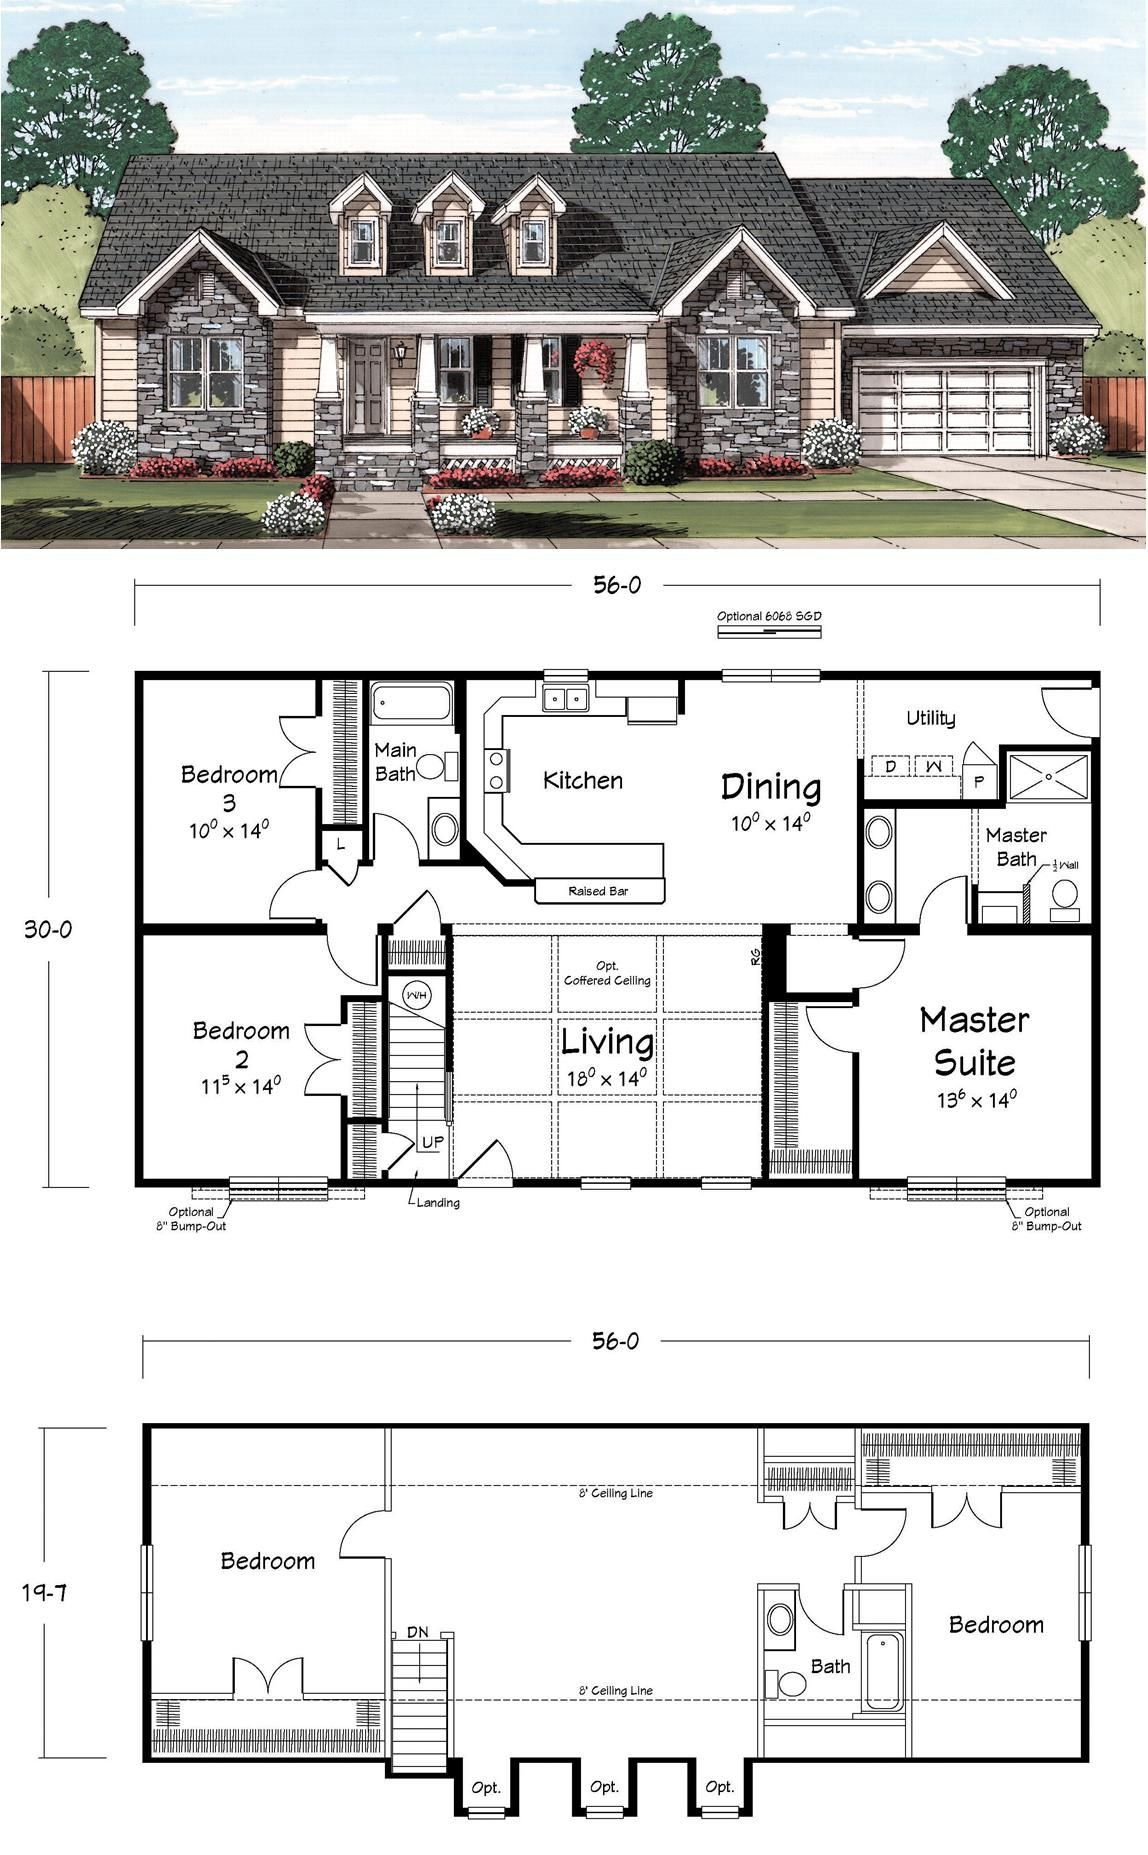 House Plans for Additions Inspirational the Smithville Cape From Ritz Craft